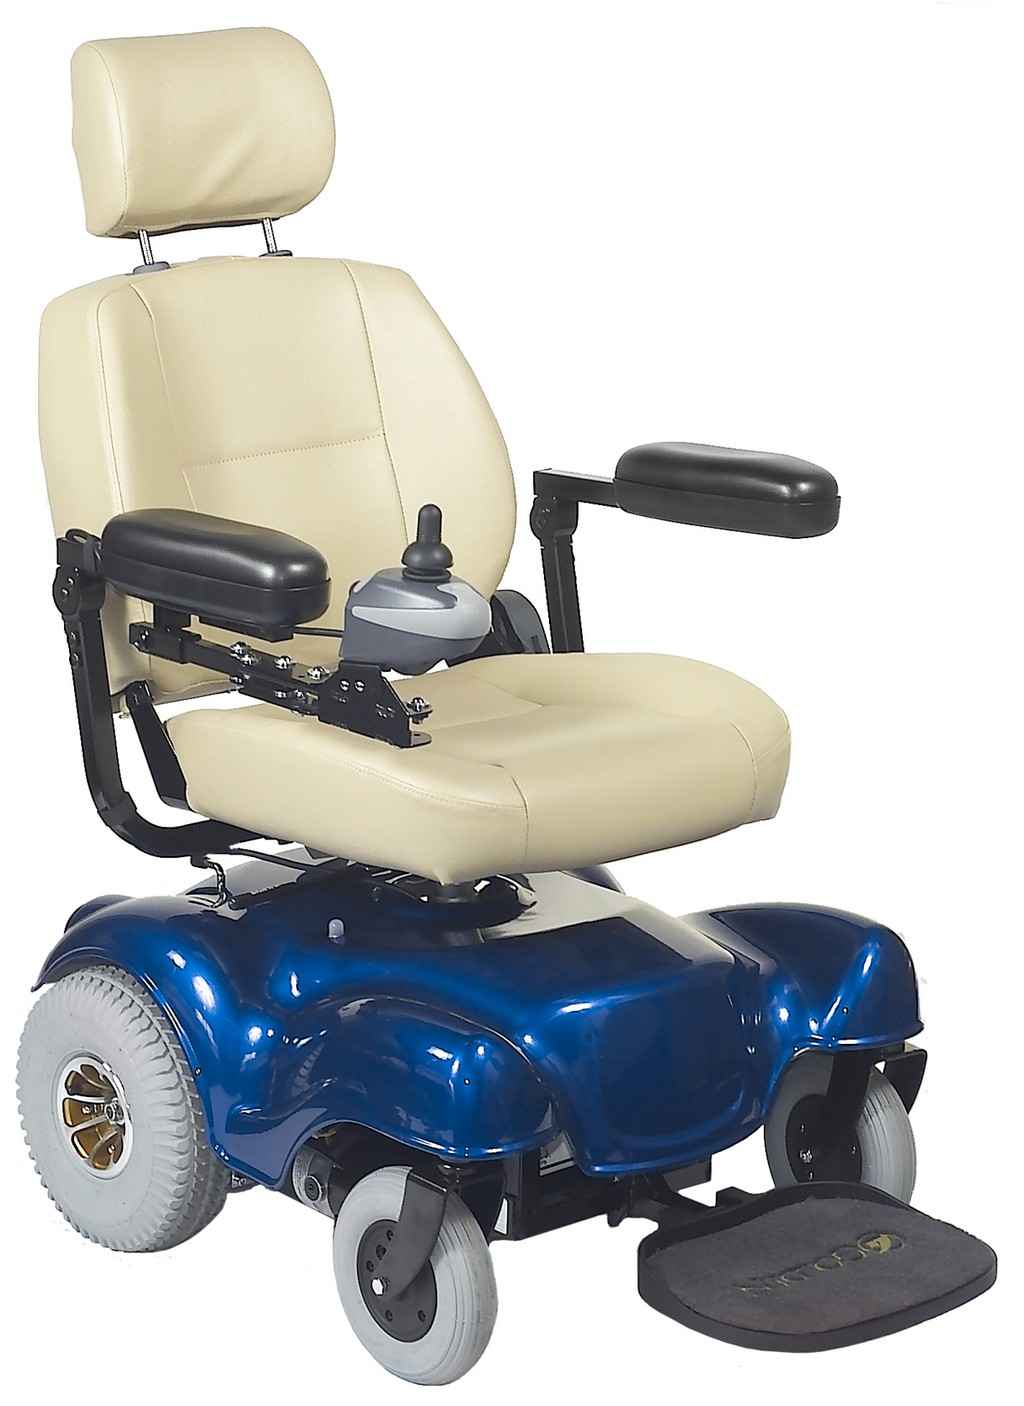 electric lift wheel chairs, chargers for electric wheelchairs, electric wheelchair how to recharge battery, jazzy 600 electric wheelchair